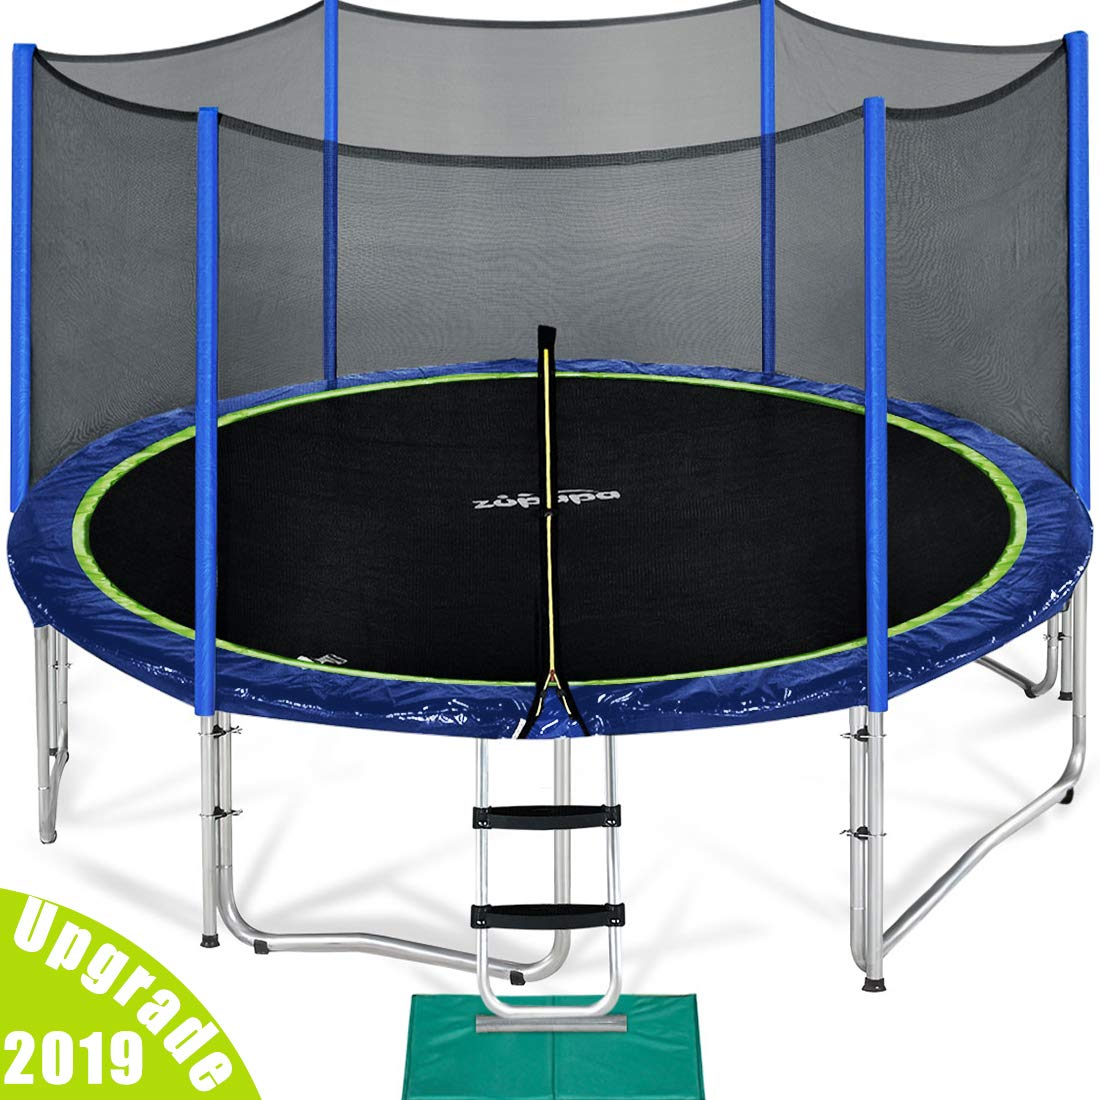 Zupapa Kids Trampoline, TUV Approved Trampoline 10ft, with Safety Enclosure Net, Heavy Duty Indoor Outdoor Round Trampoline for Kids by Zupapa (Image #1)